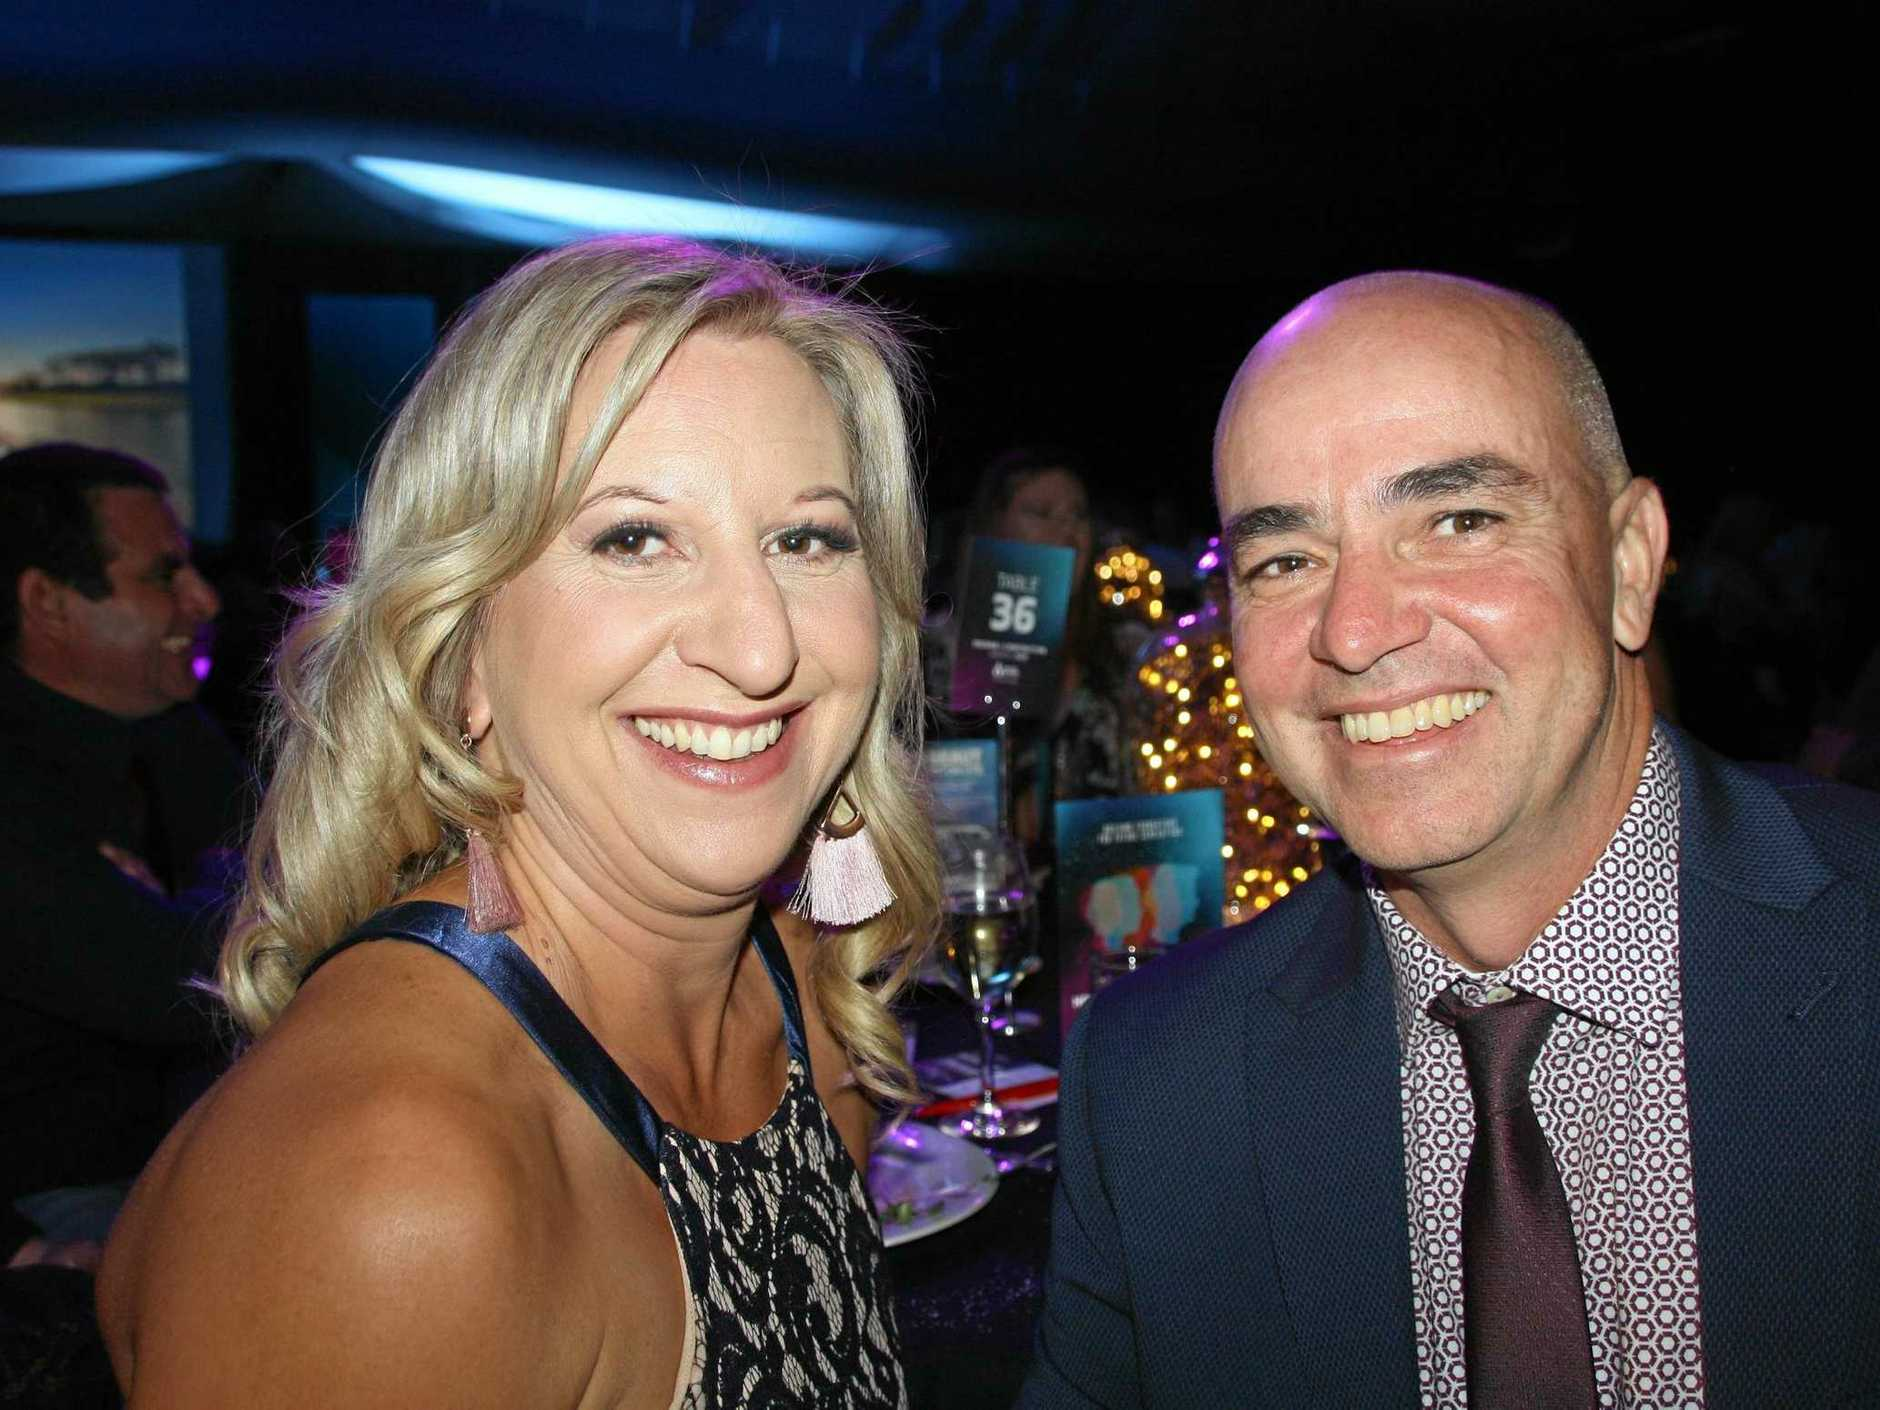 BIG WINS: Fiona and Doug Channells of Gympie home building company Aspect Homes had a fabulous night of success and peer recognition at the 2019 The Sunshine Coast Master Builders Housing and Construction Awards at the Novotel Twin Waters Resort on Saturday.